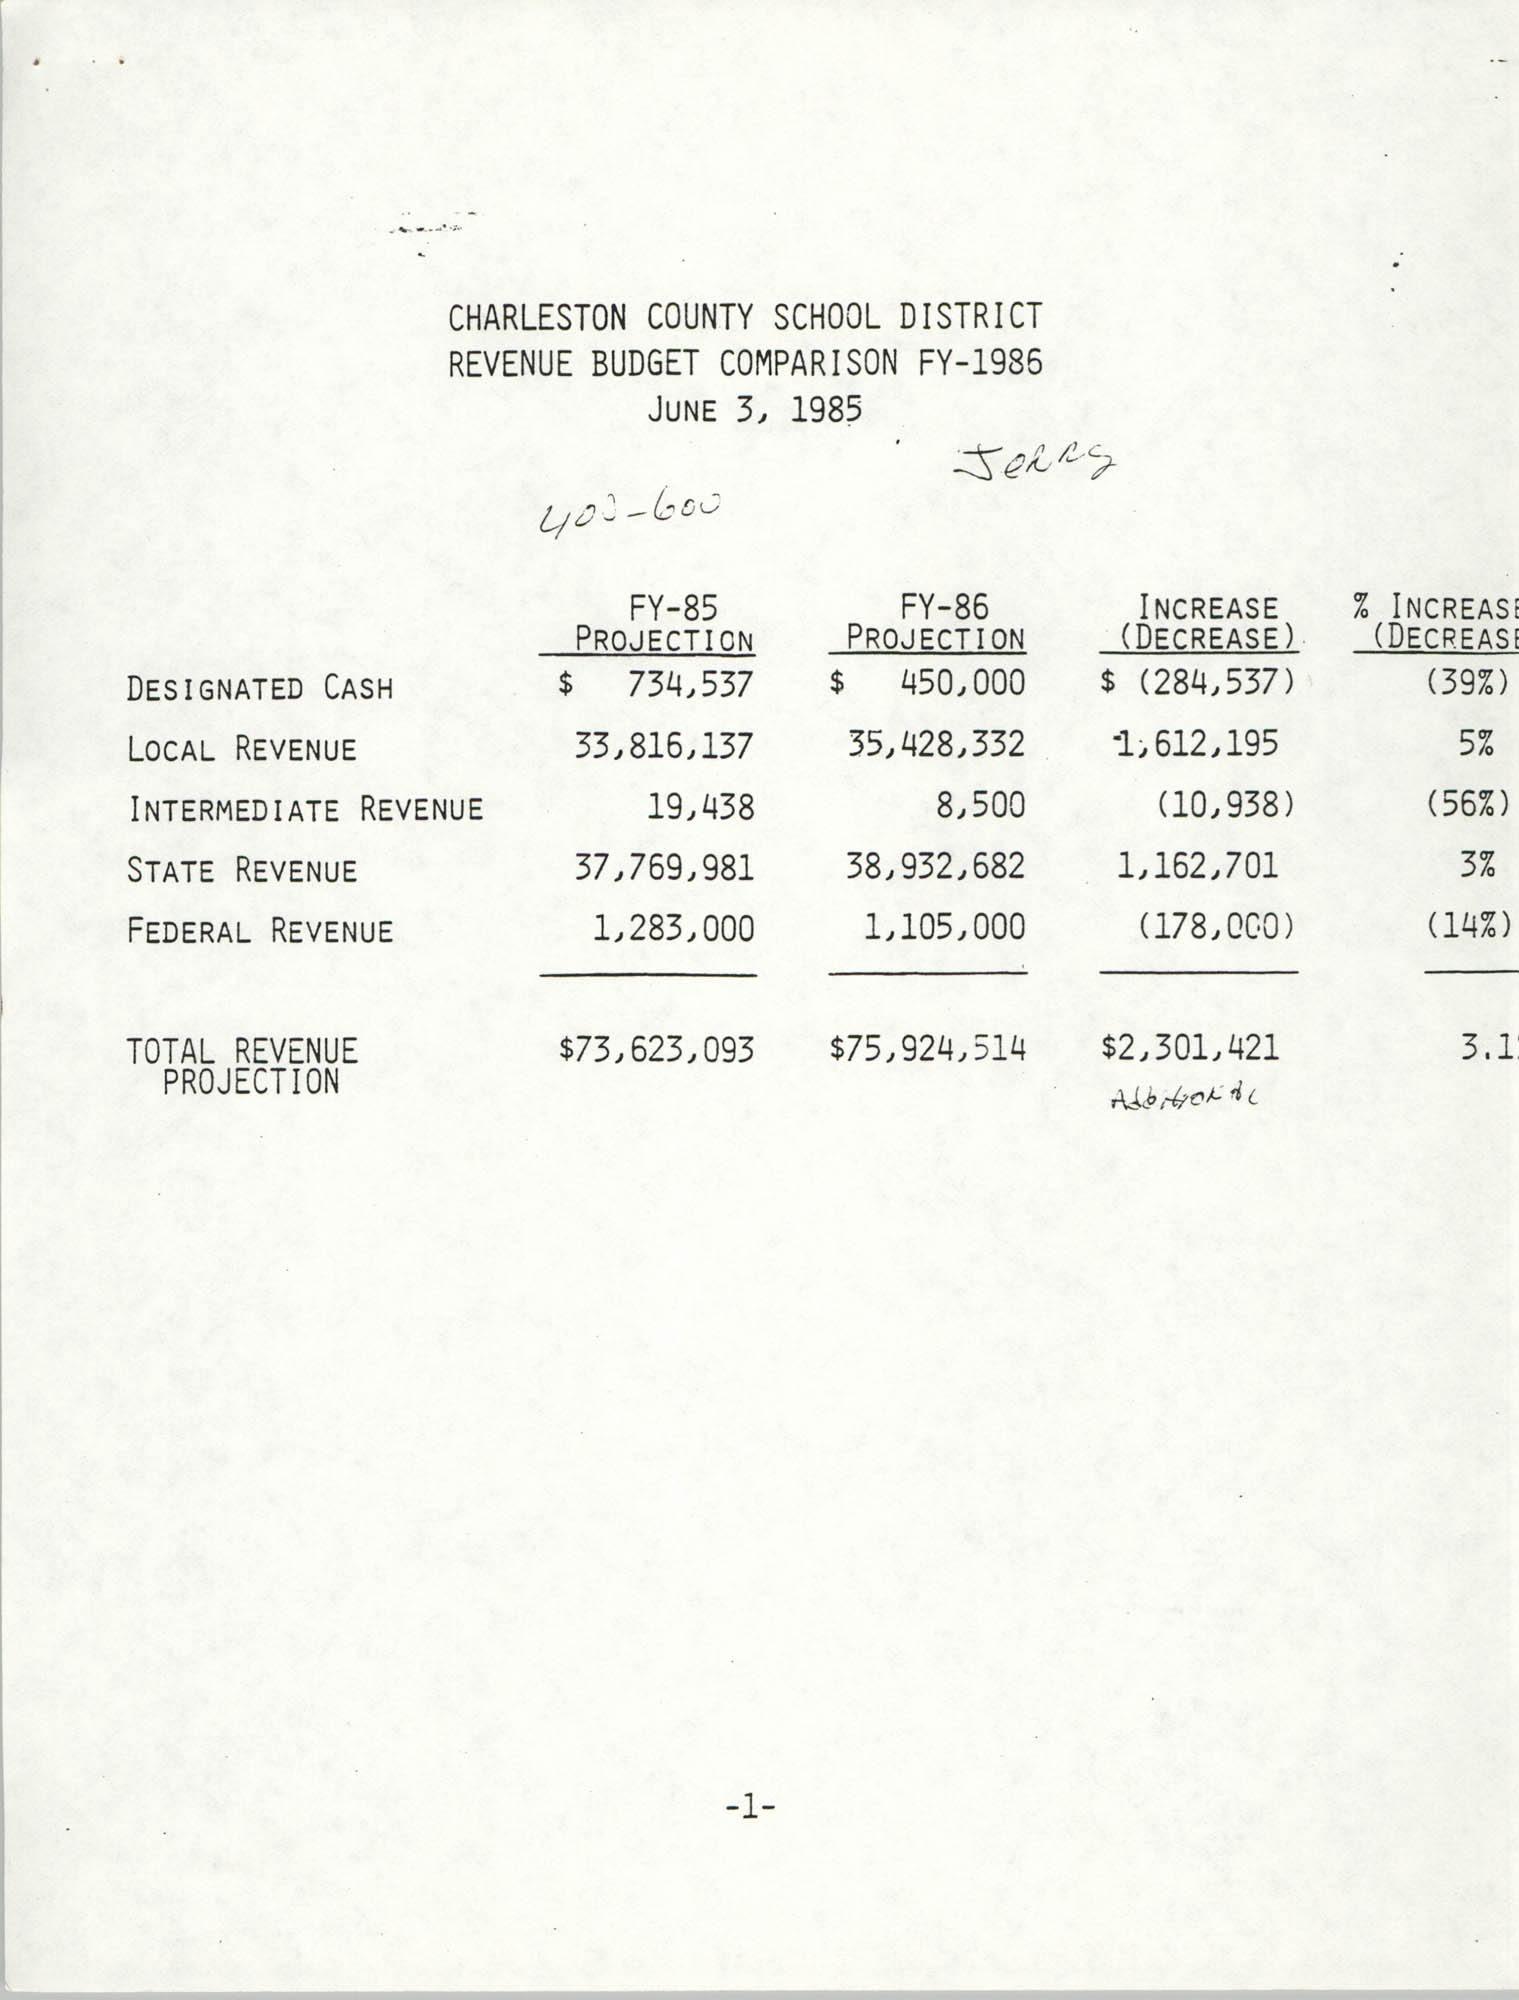 Charleston County School District Revenue and Expenditure Summary, 1985-1986 Public Hearing, Page 1